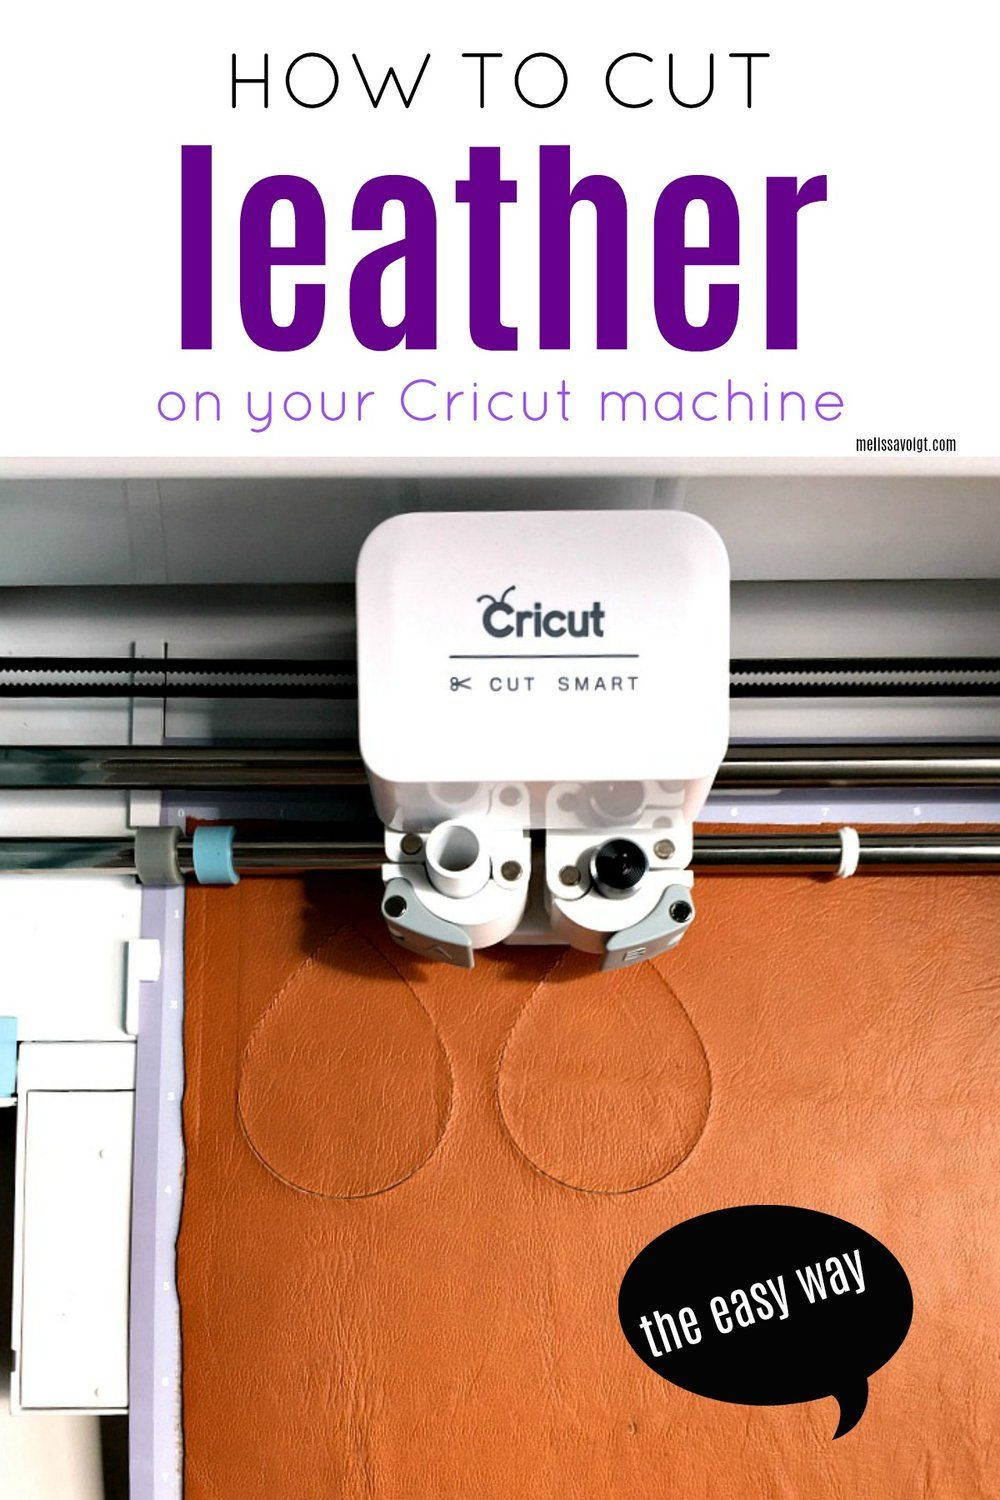 HOW TO CUT LEATHER ON YOUR CRICUT THE EASY WAY! is part of diy - Cut real leather on your Cricut without ruining your MAT!! This Cricut project is great for beginners  A easy tutorial for using leather and creating easy Cricut projects